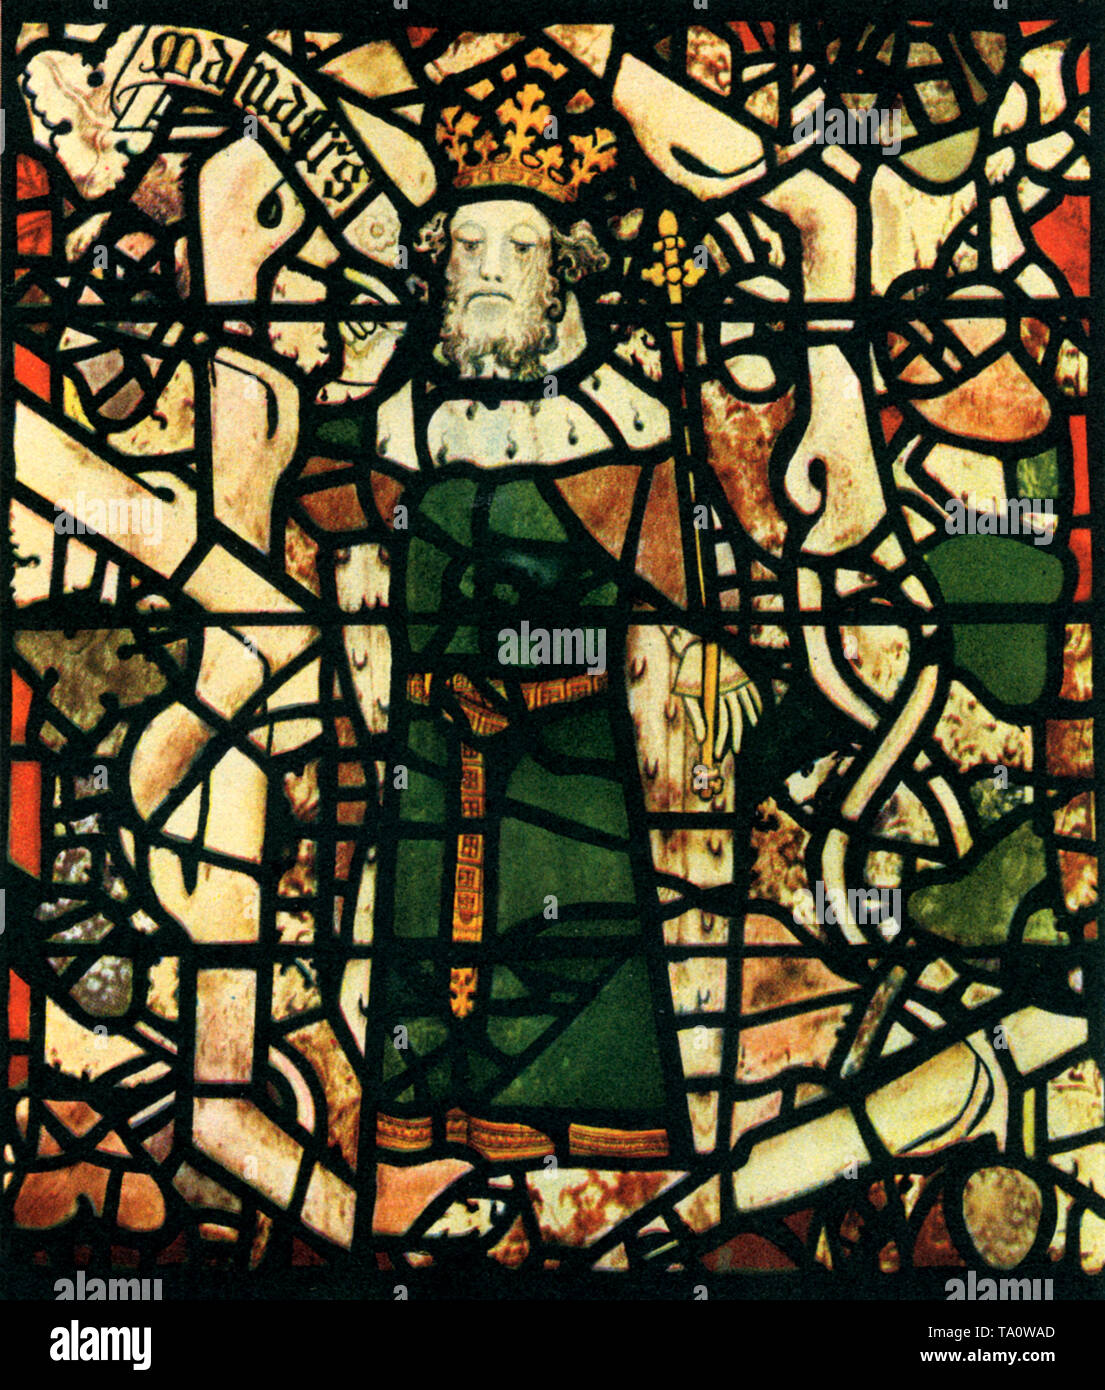 The Tree of Jesse was made c1386 for the west window of the anti-chapel of the New College, Oxford by Thomas Glazier of Oxford. The glass was later installed in the Choir of York Minster in 1770 after it was given to William Peckitt as part-payment for his work for New College. In this detail of the window we see King Manasses of Judah (c709 BC-c643 BC). - Stock Image